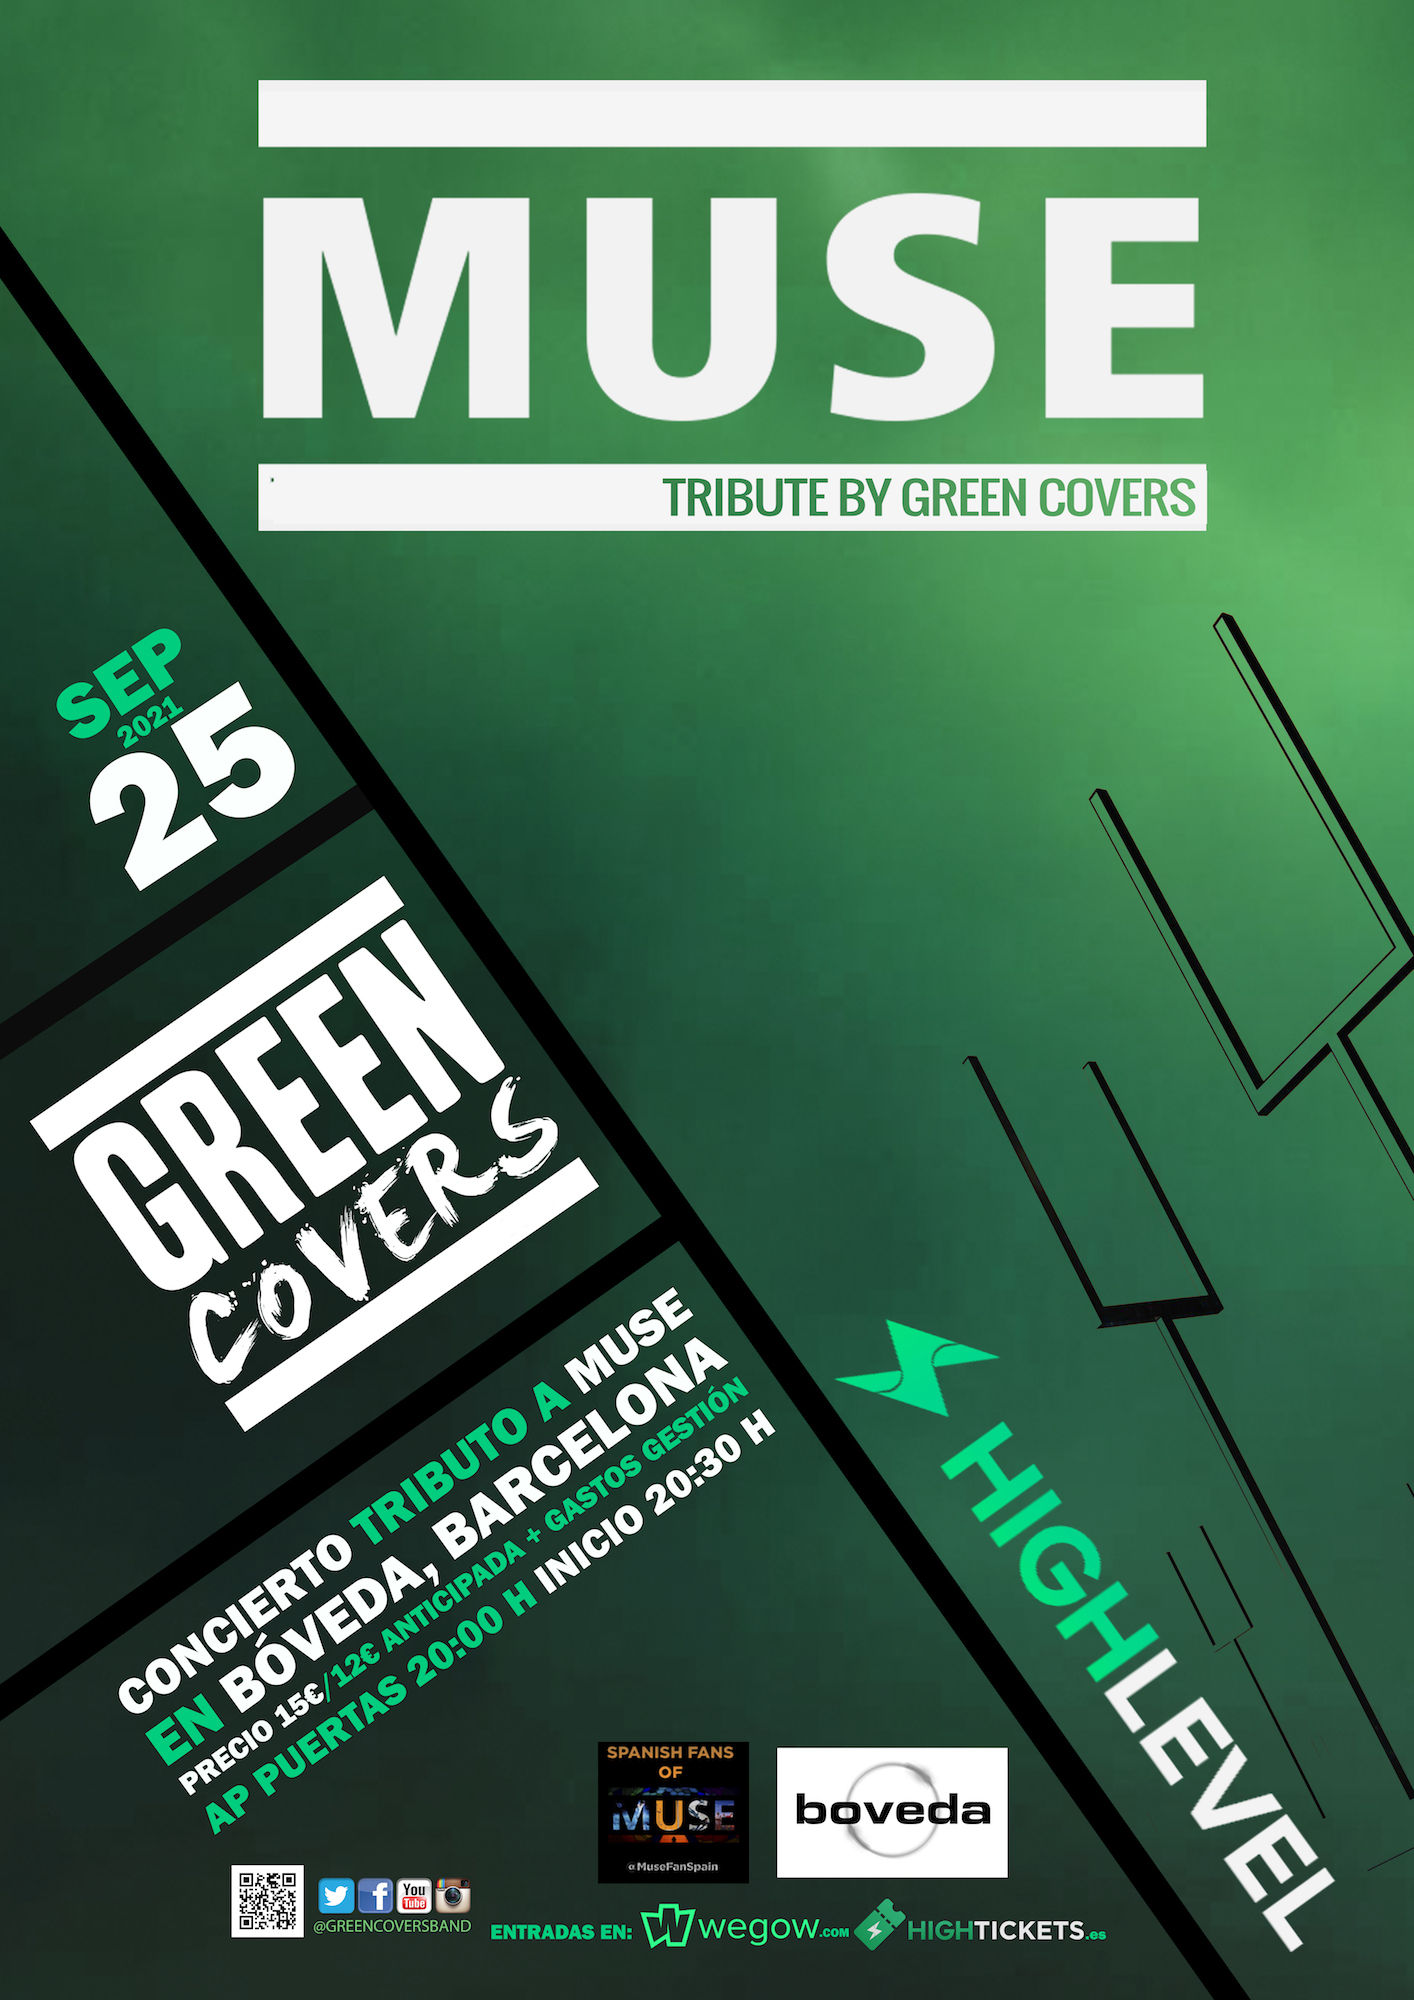 muse tribute by green covers barcelona 1625526383499133